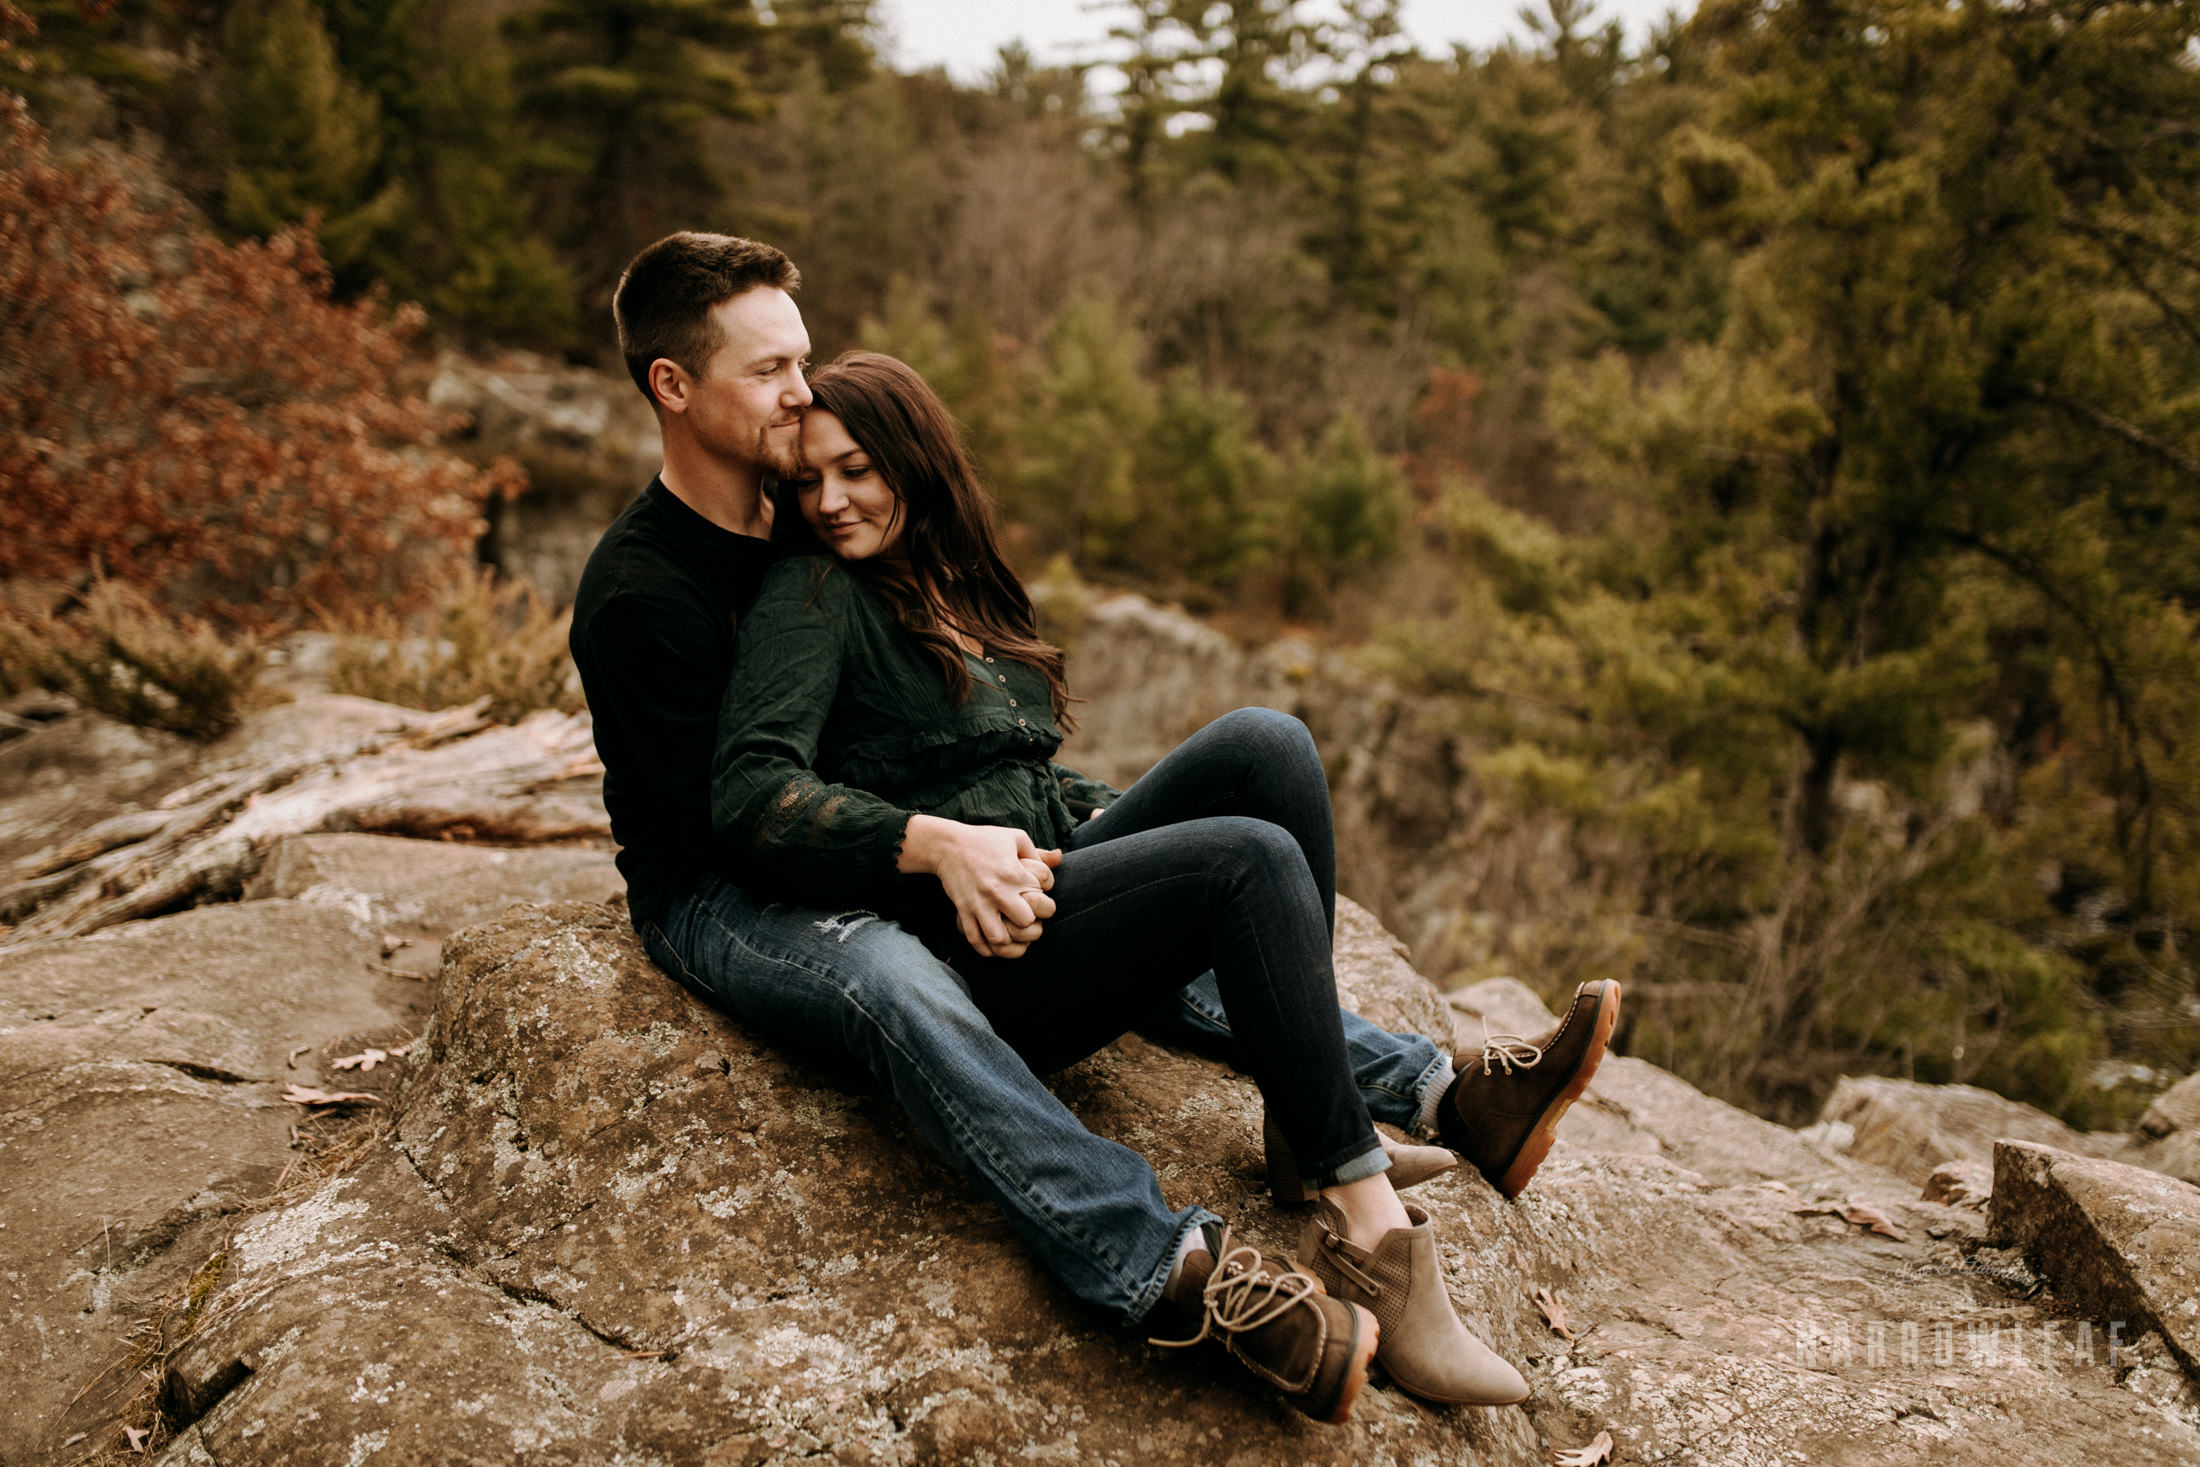 wisconsin-engagement-photographer-Narrowleaf_Love_and_Adventure_Photography-0622.jpg